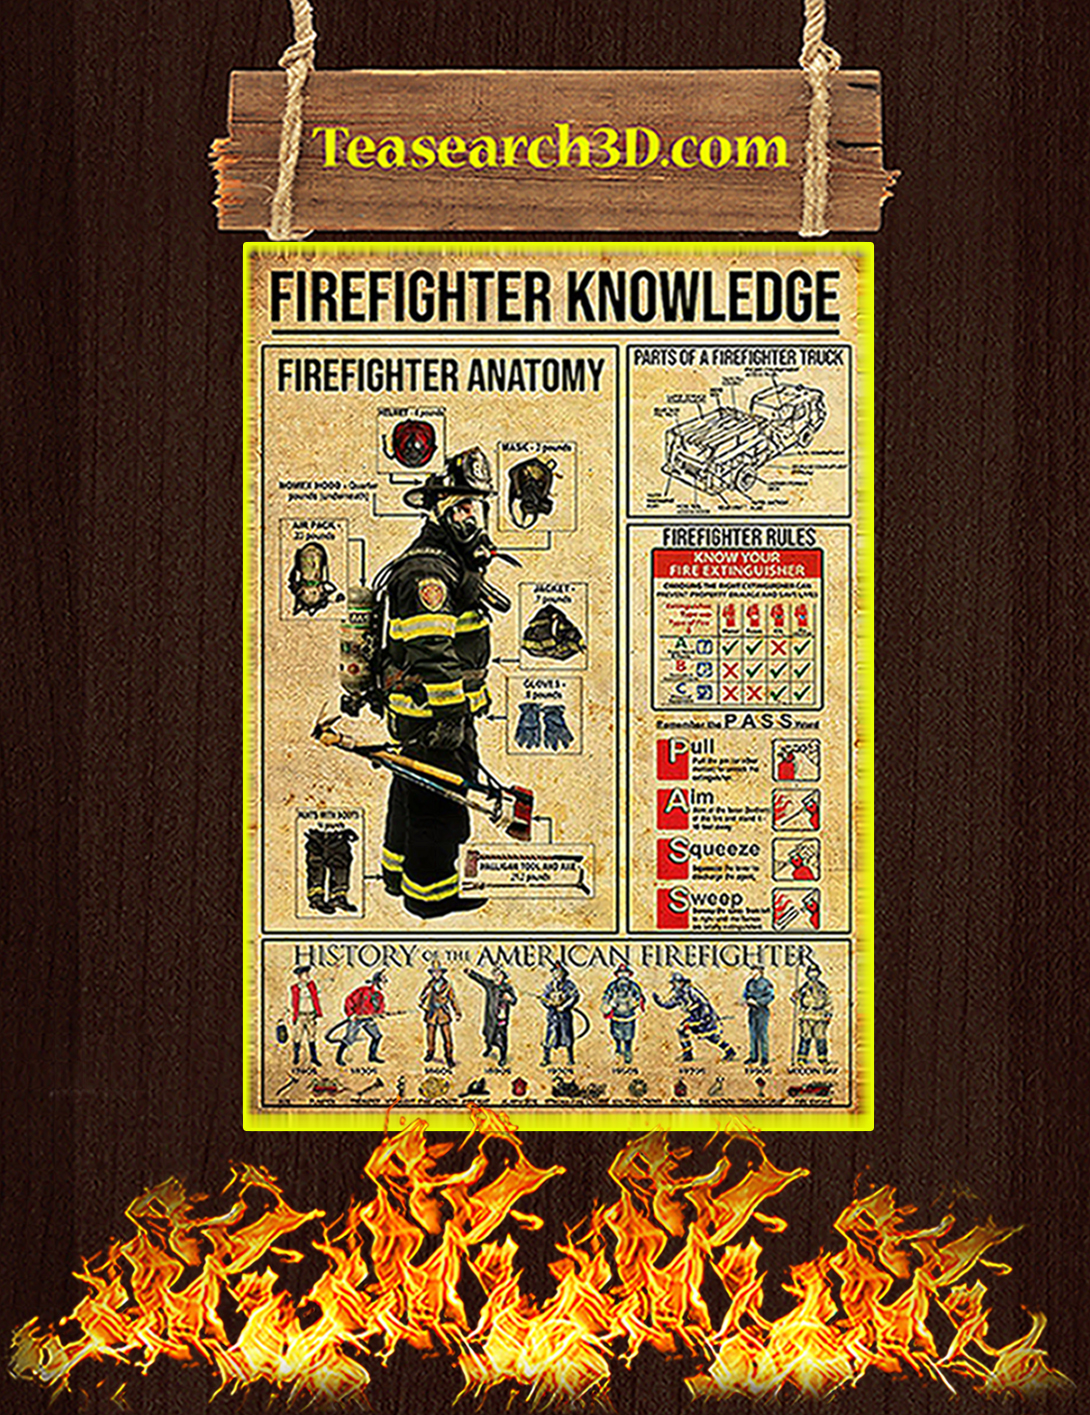 Firefighter knowledge poster A2